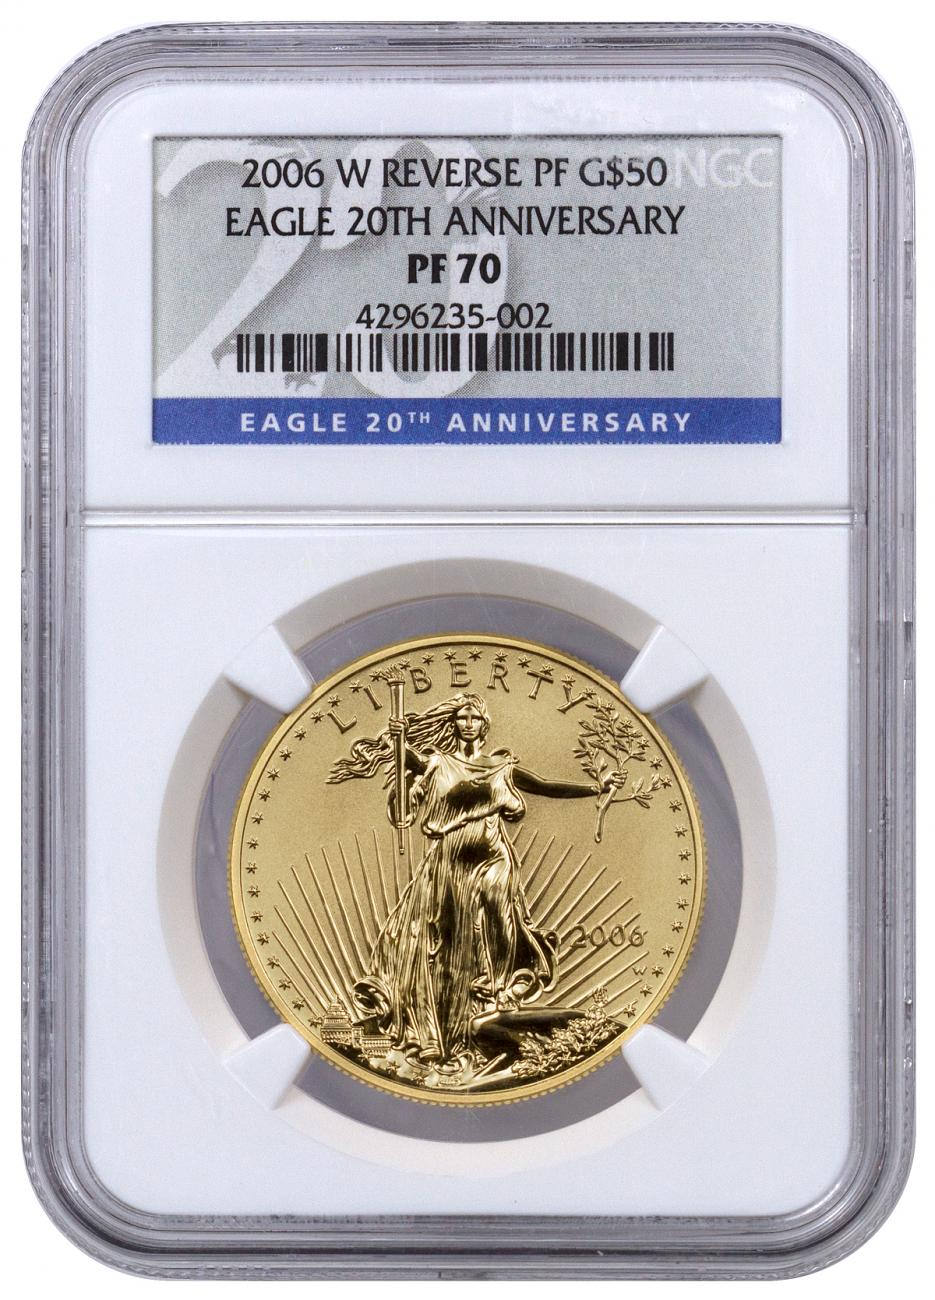 2006 W 1 Oz Reverse Proof Gold Eagle 50 20th Anniversary